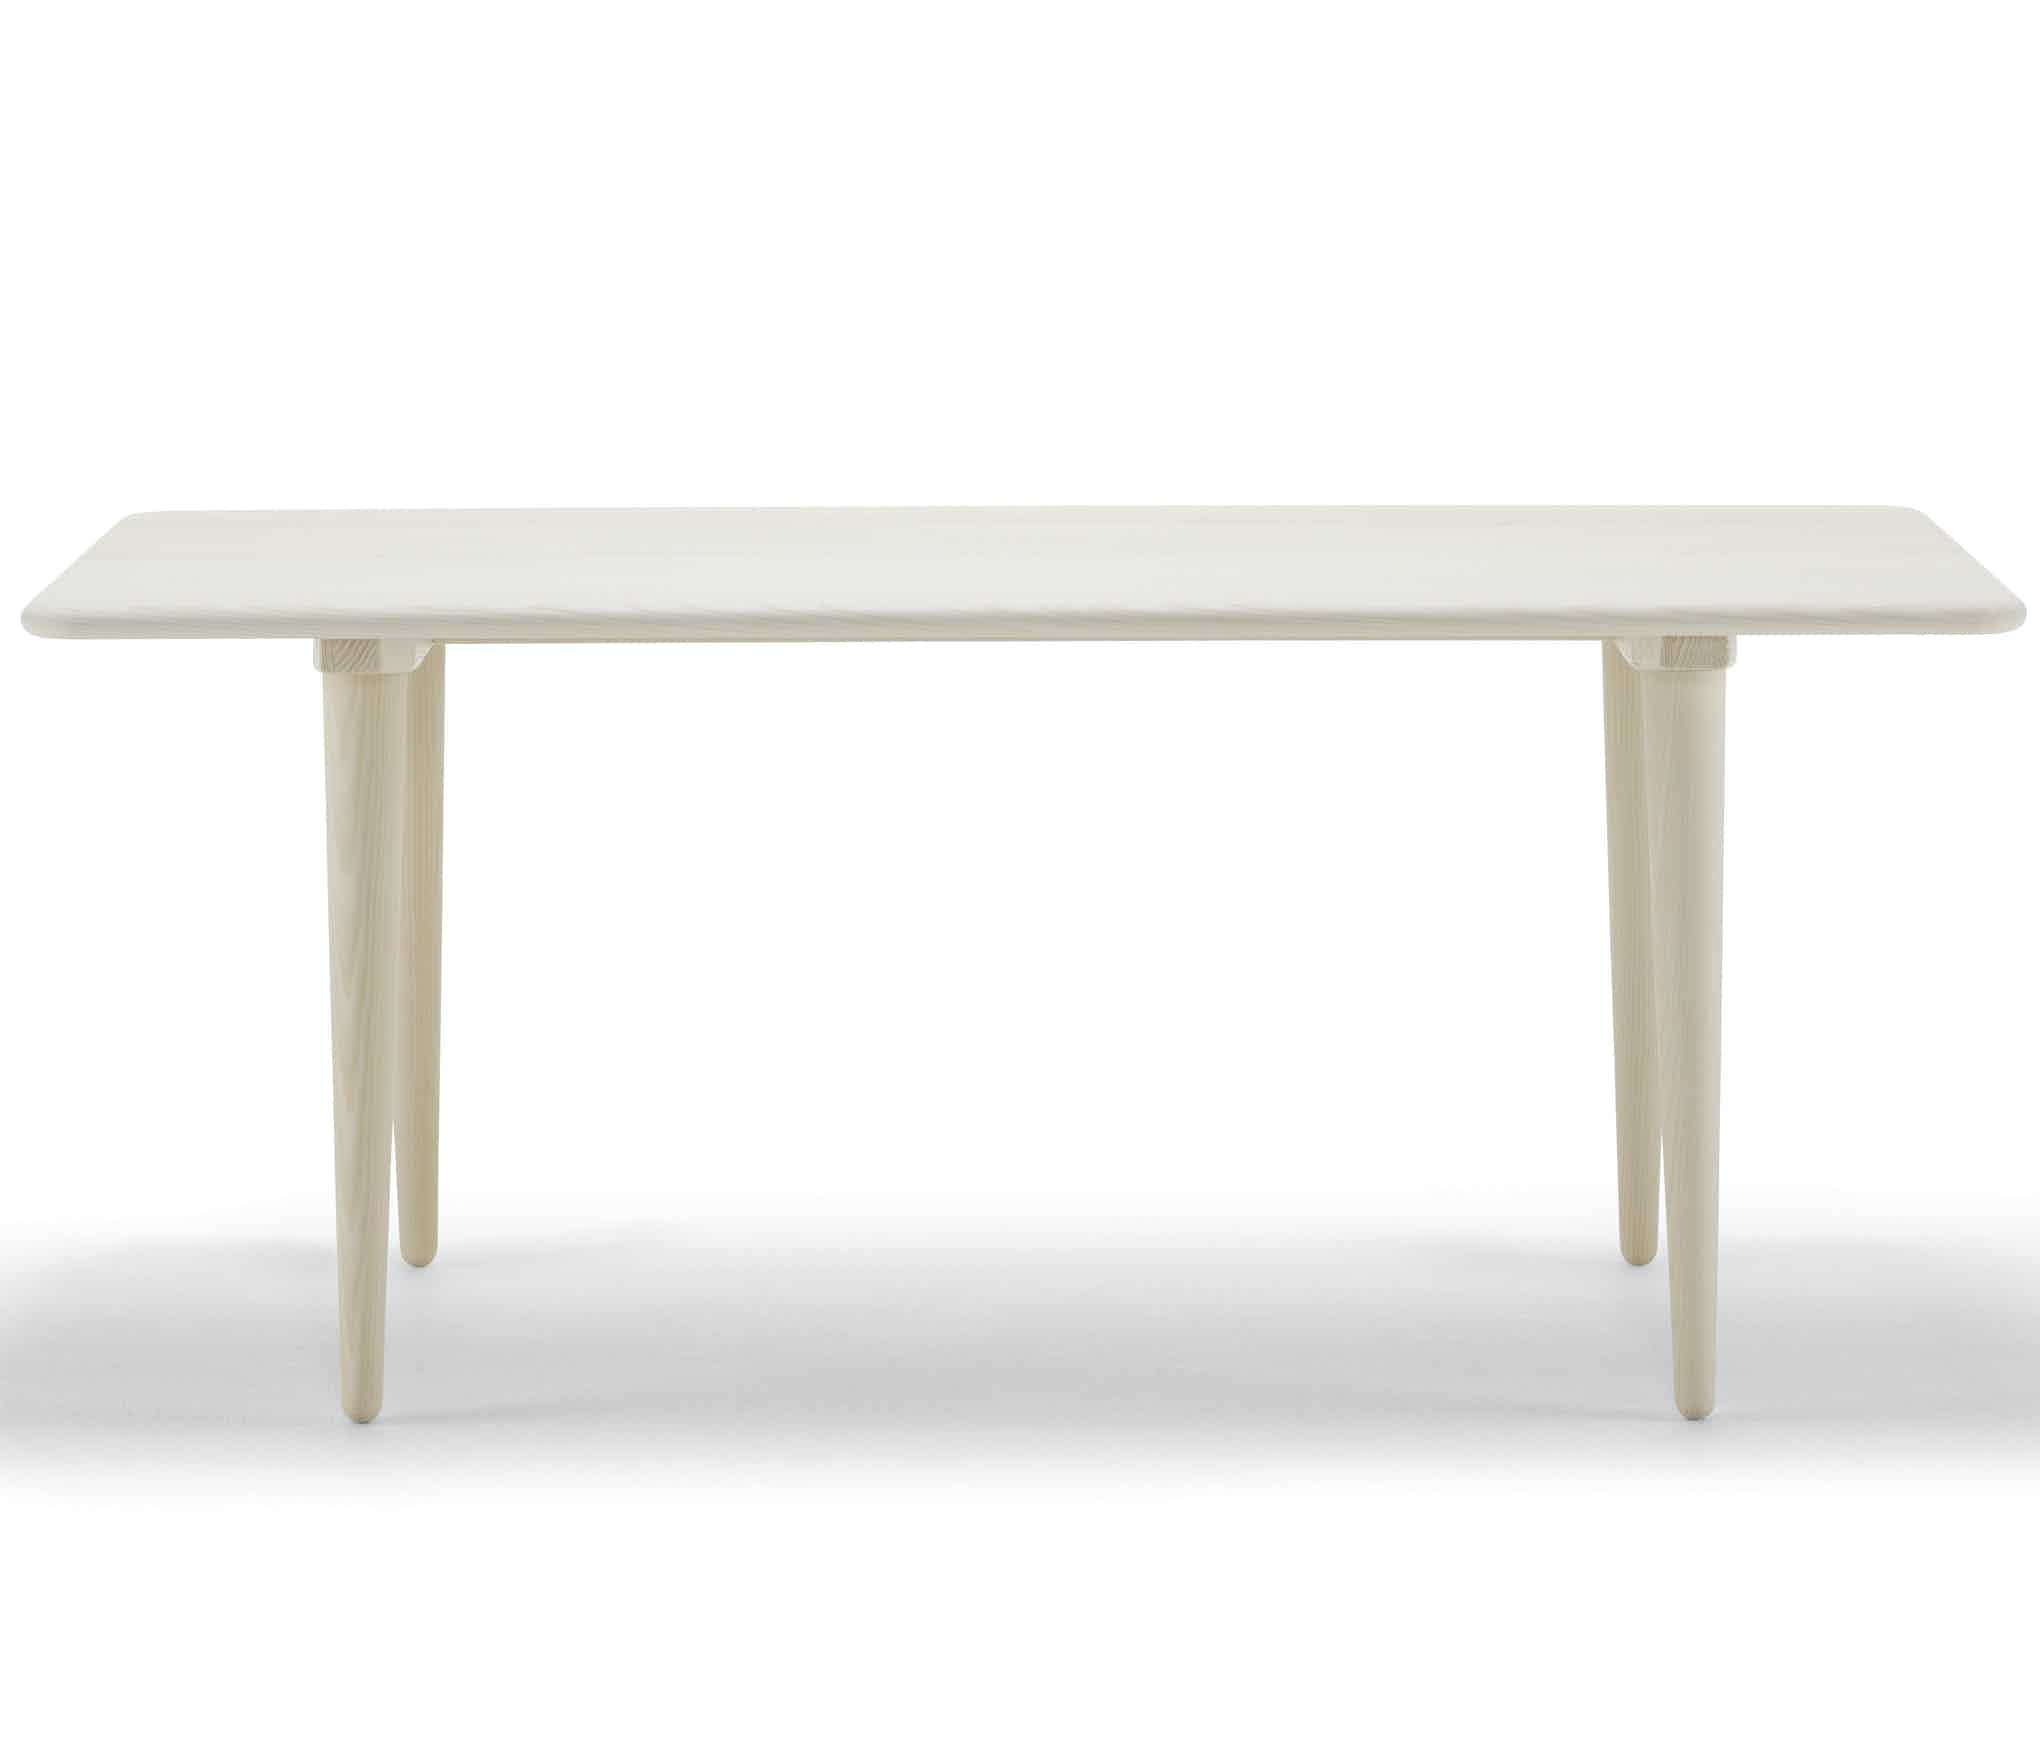 Carl-hansen-son-side-ch011-haute-living